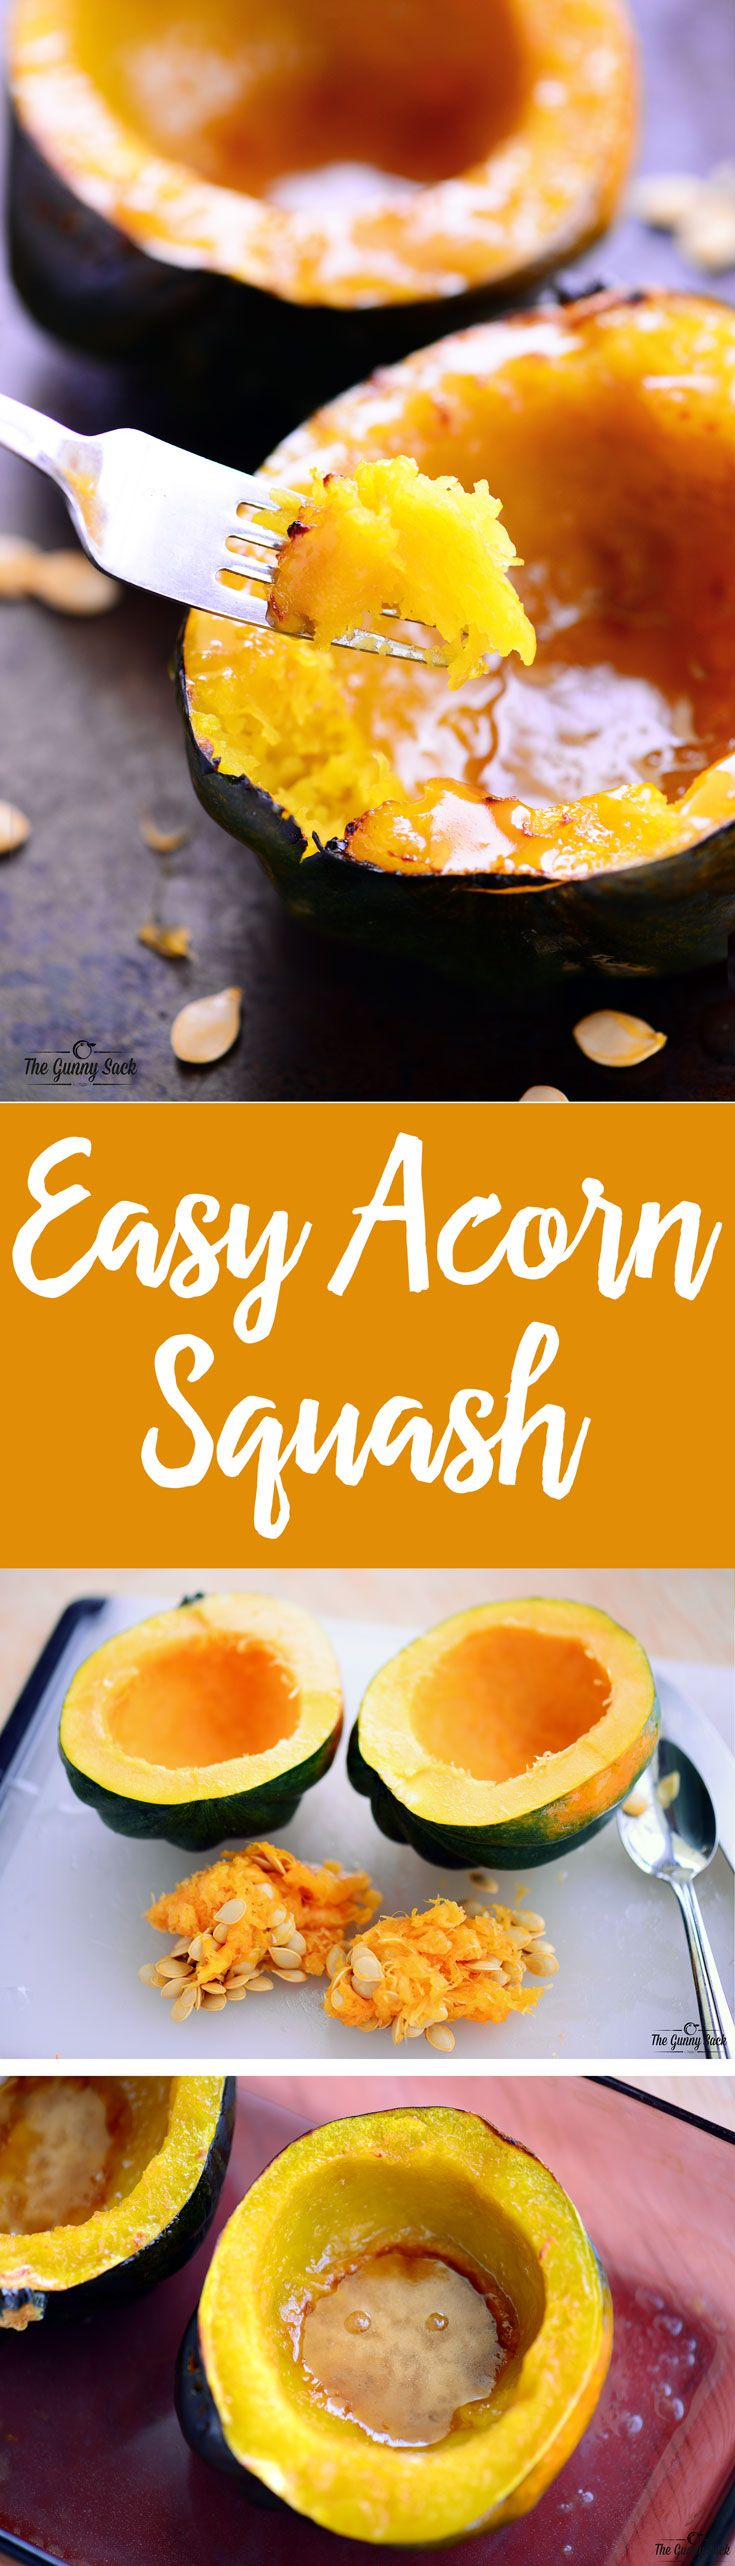 This Easy Acorn Squash Recipe is a healthy side dish that tastes like dessert to me! It's a great way to get more veggies in your diet.